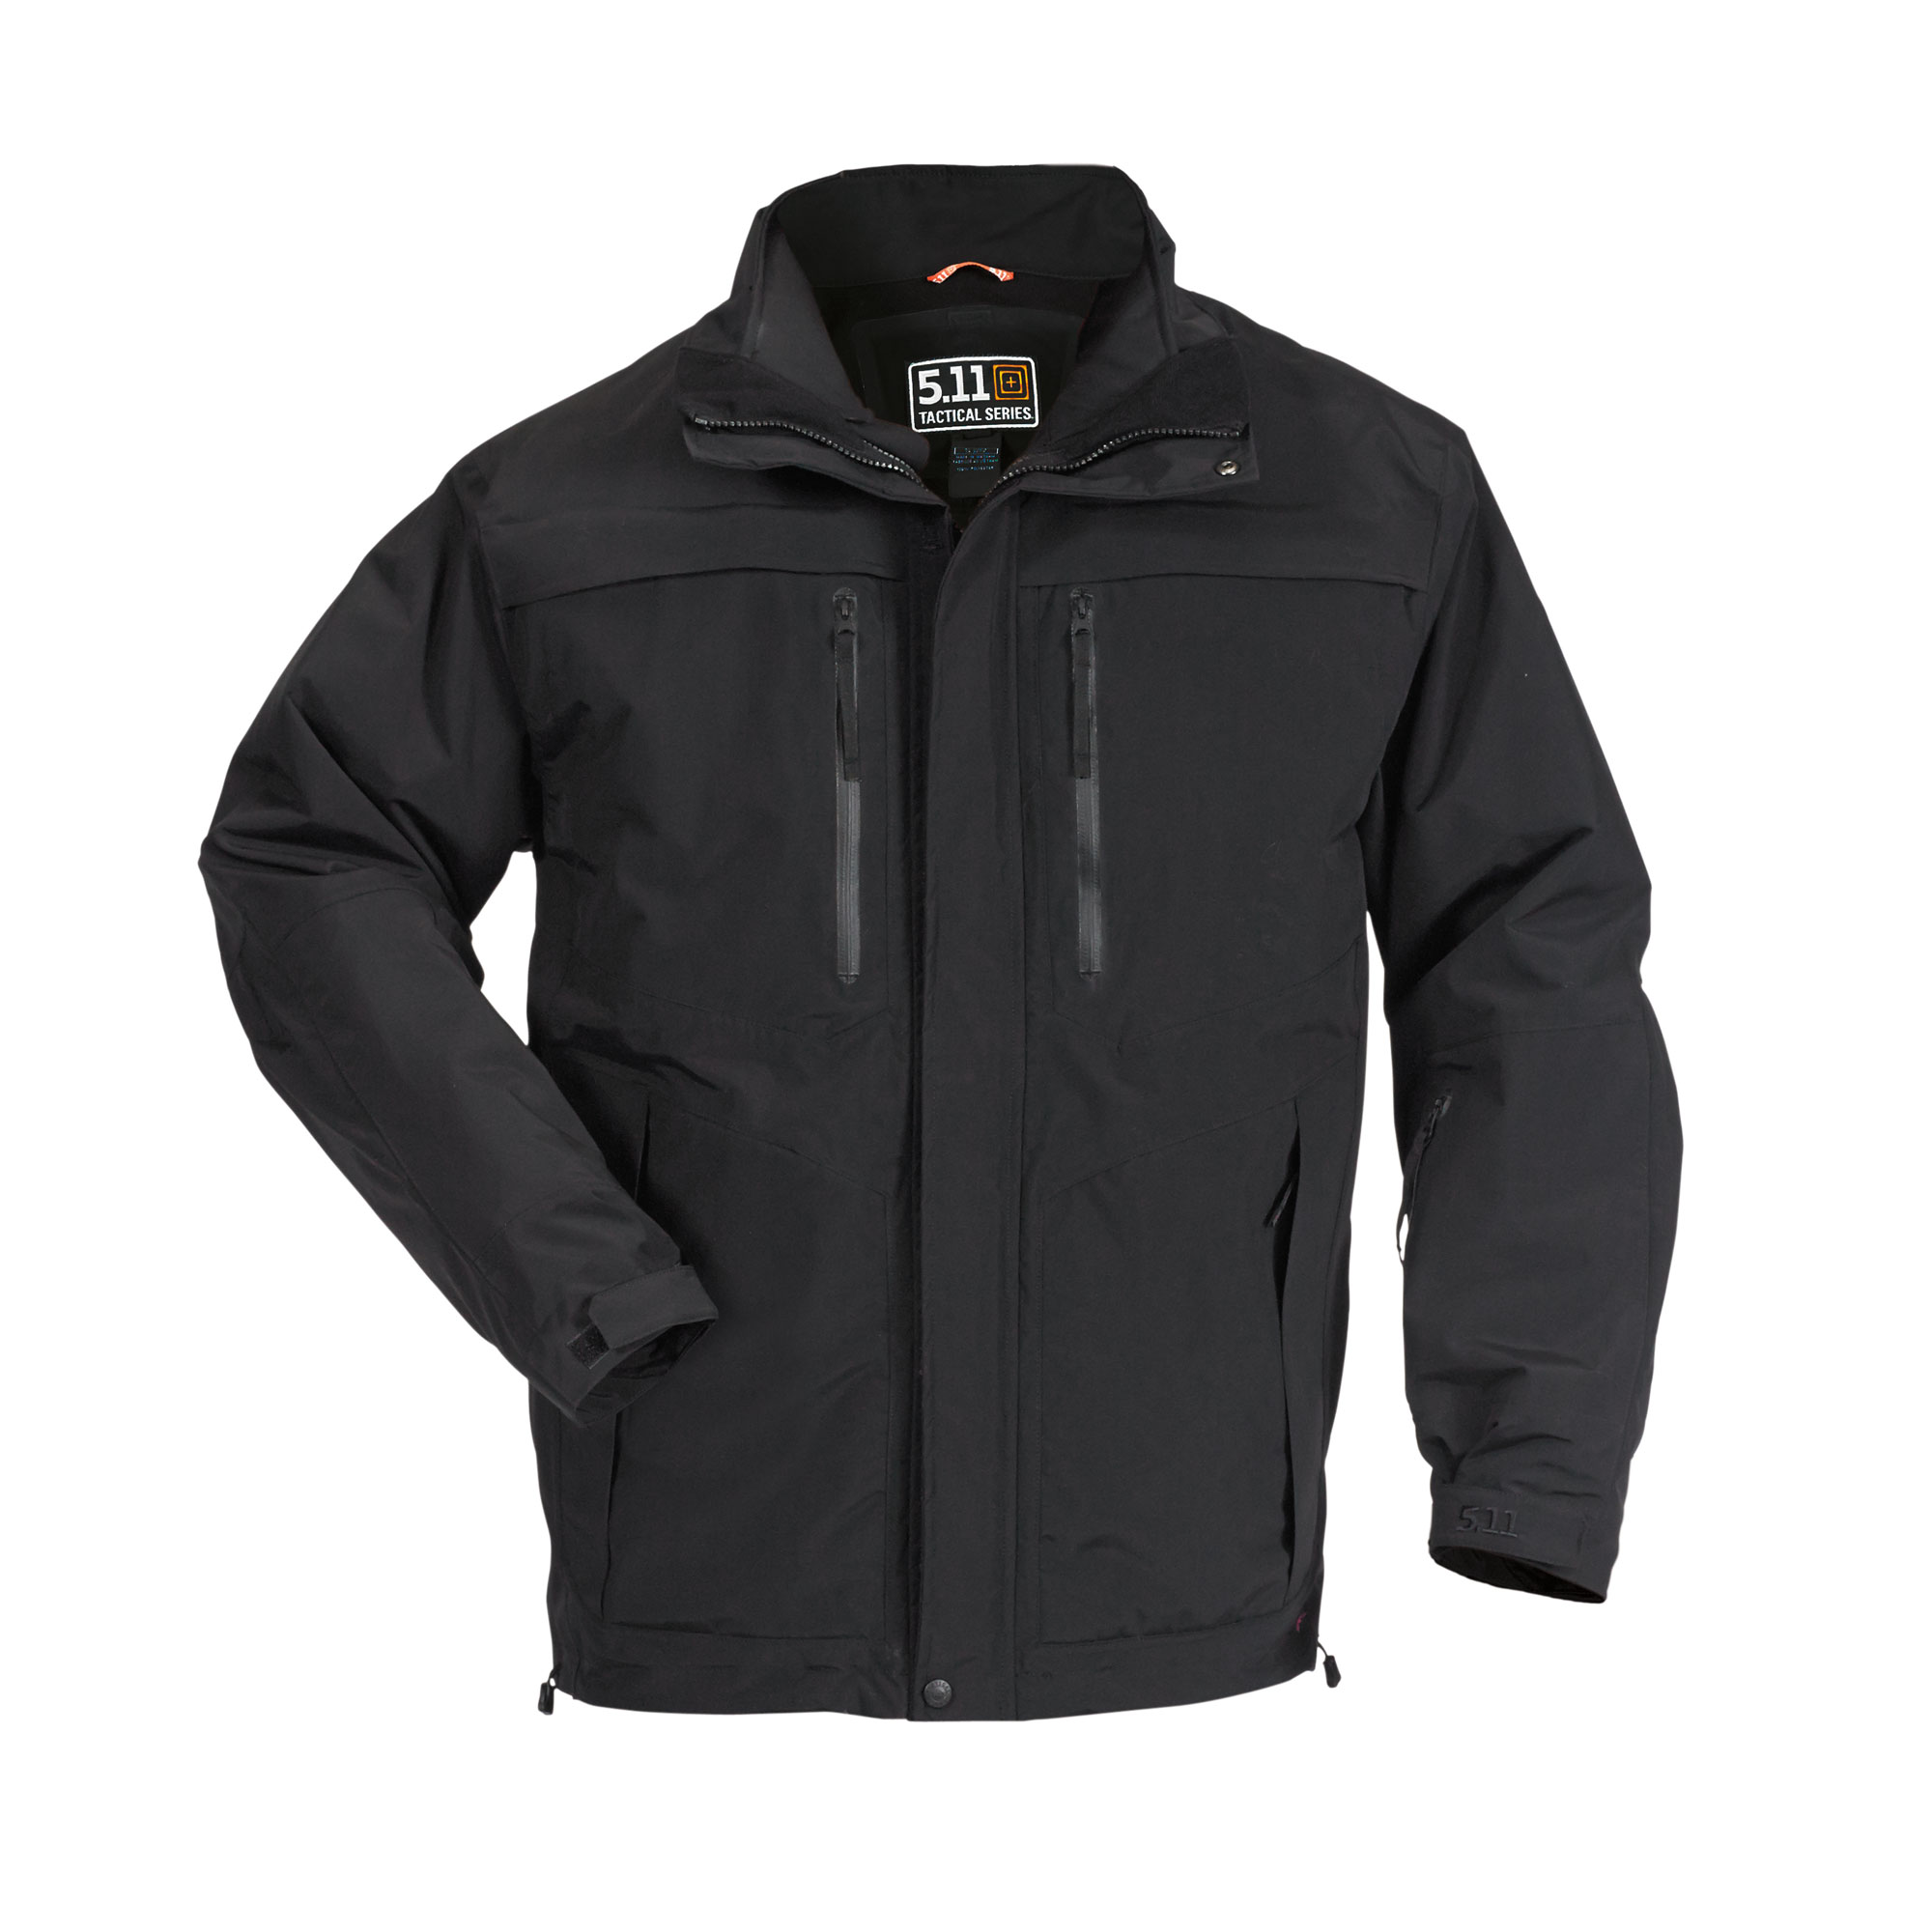 5.11 Tactical Men's Bristol Parka Jacket (Black) thumbnail